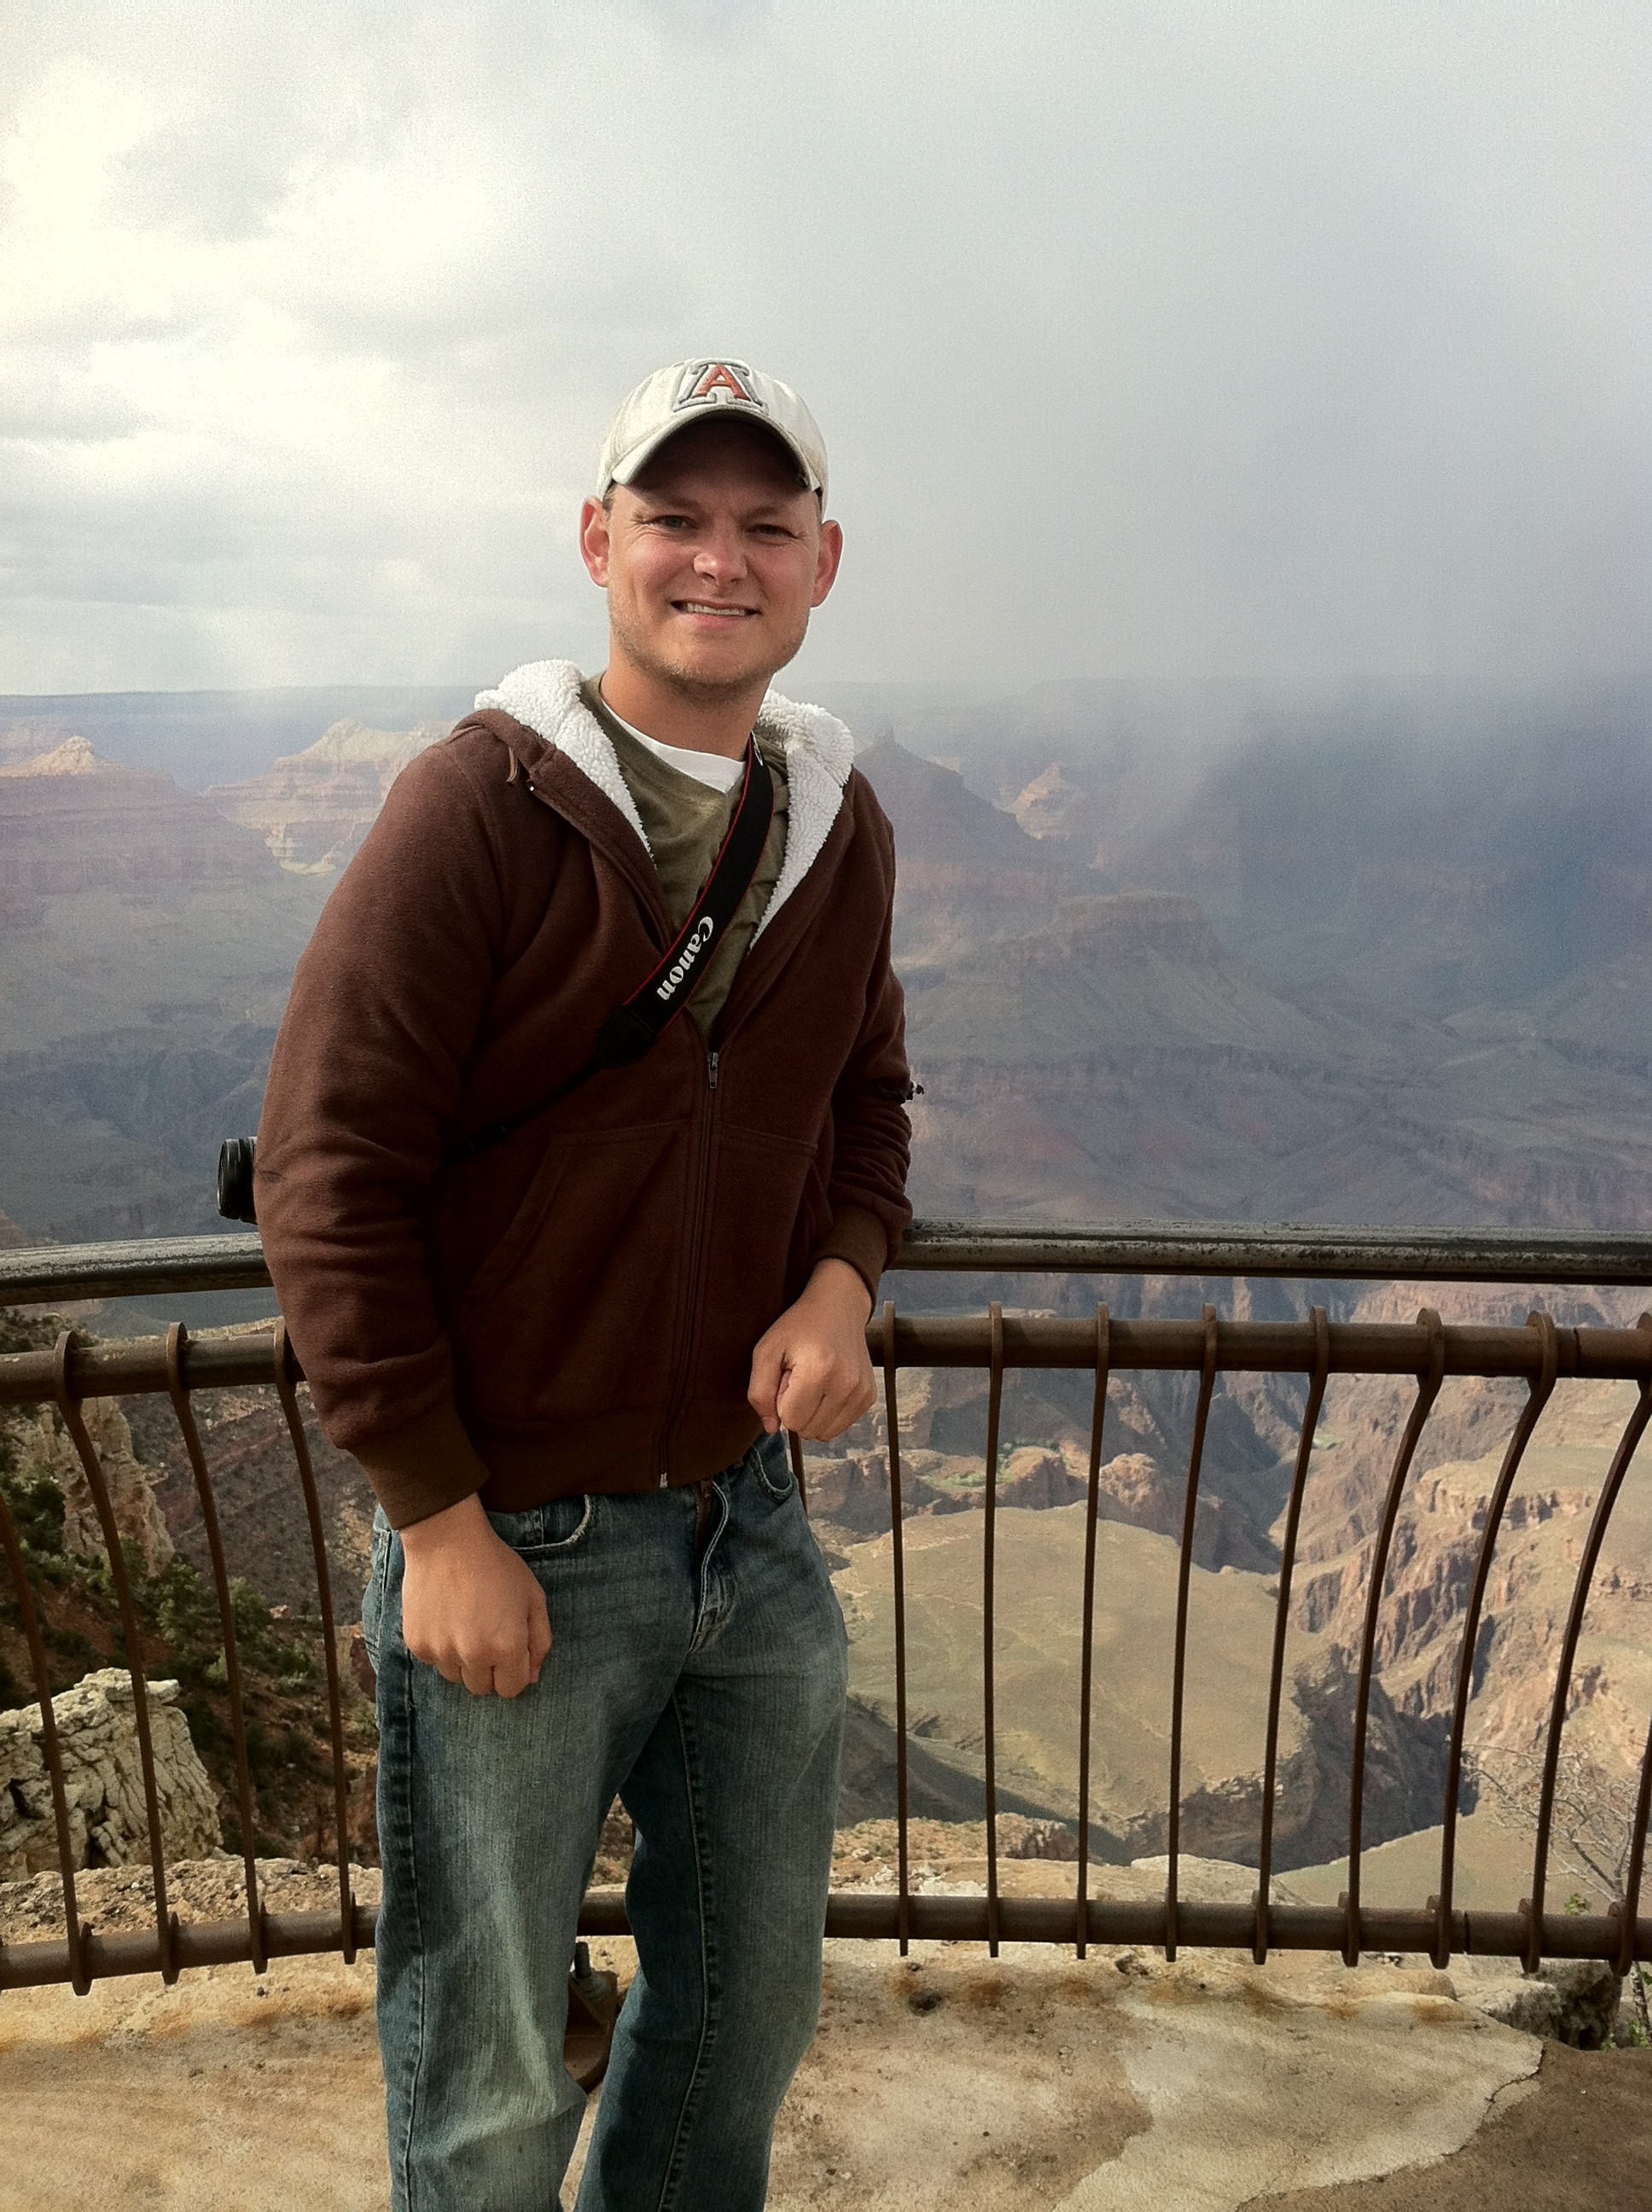 Me at the Grand Canyon South Rim 2012